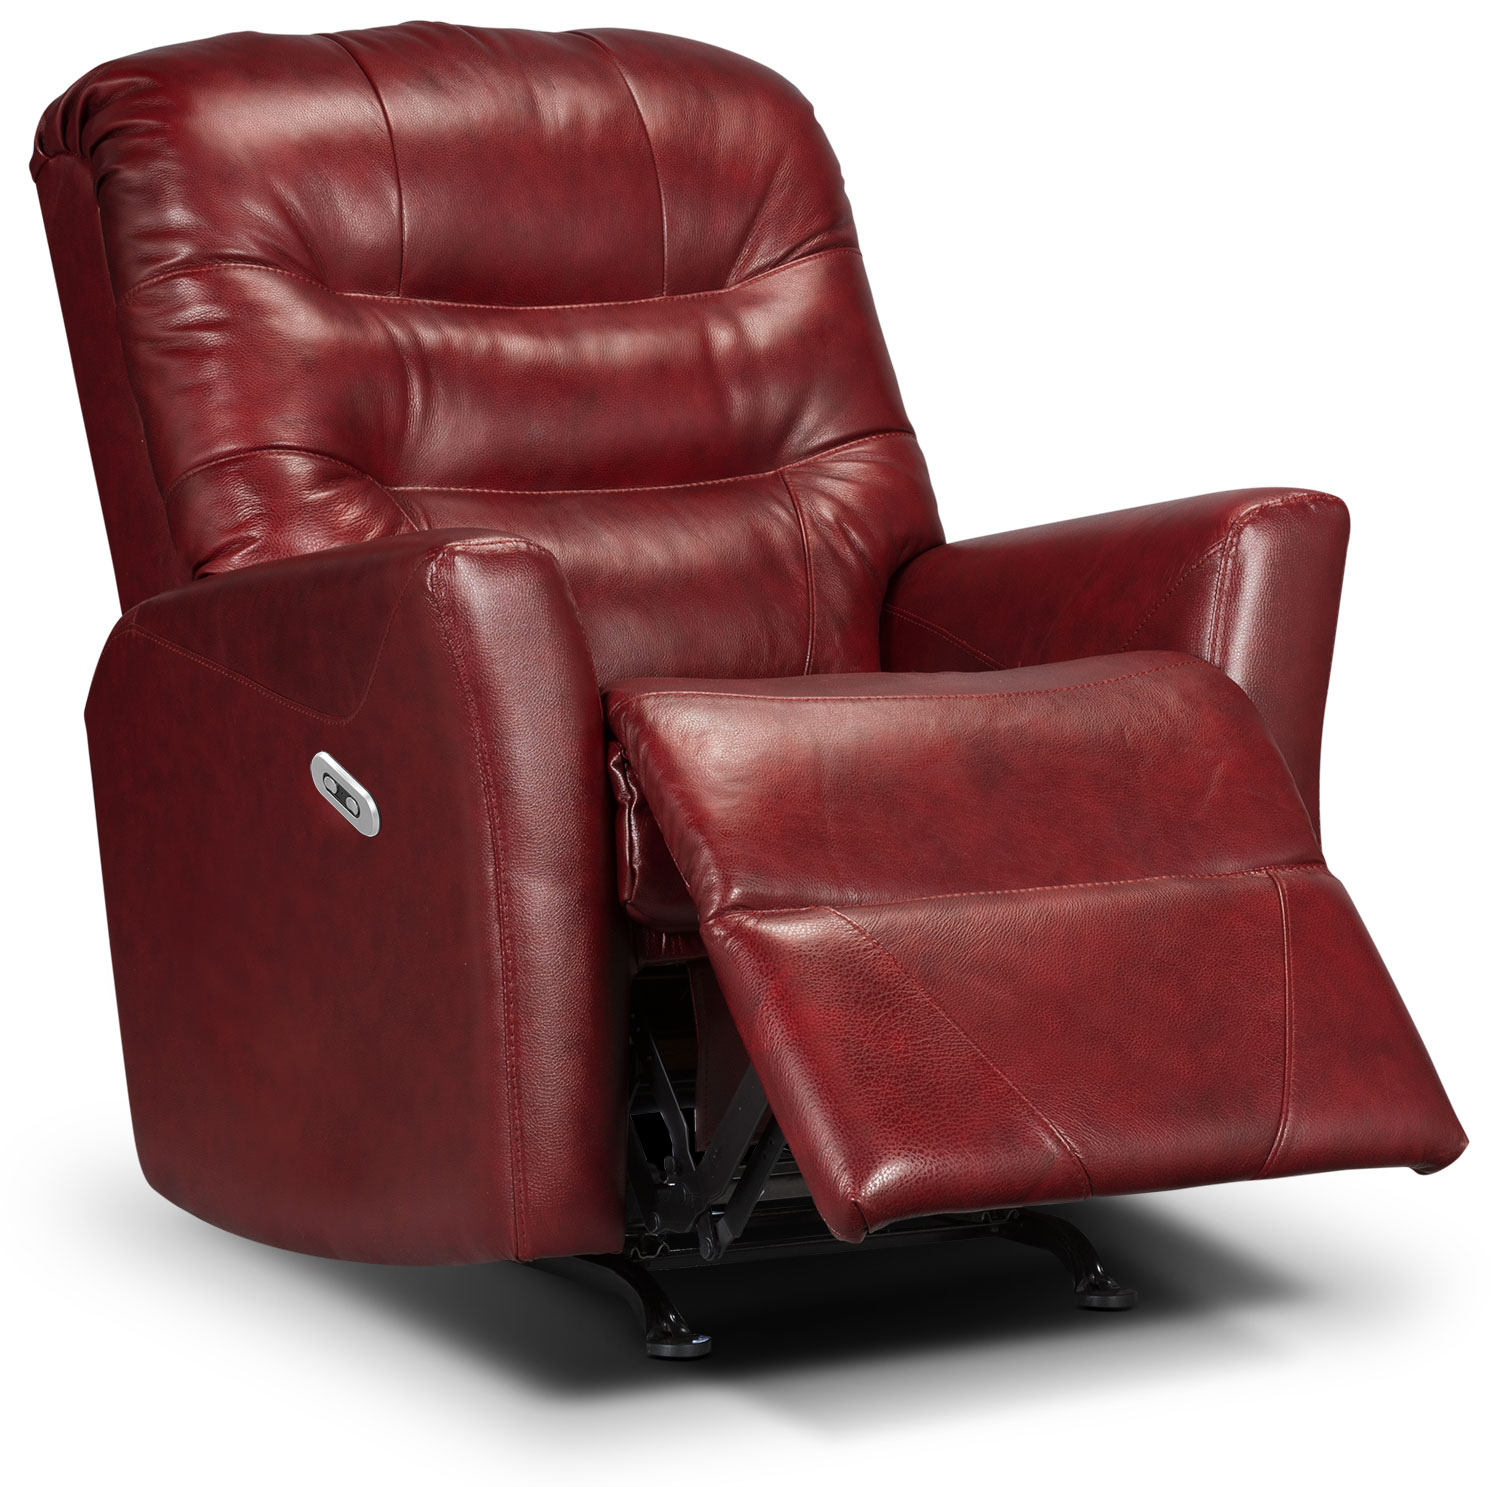 Designed2B Recliner 4560 Genuine Leather Power Recliner - Paprika